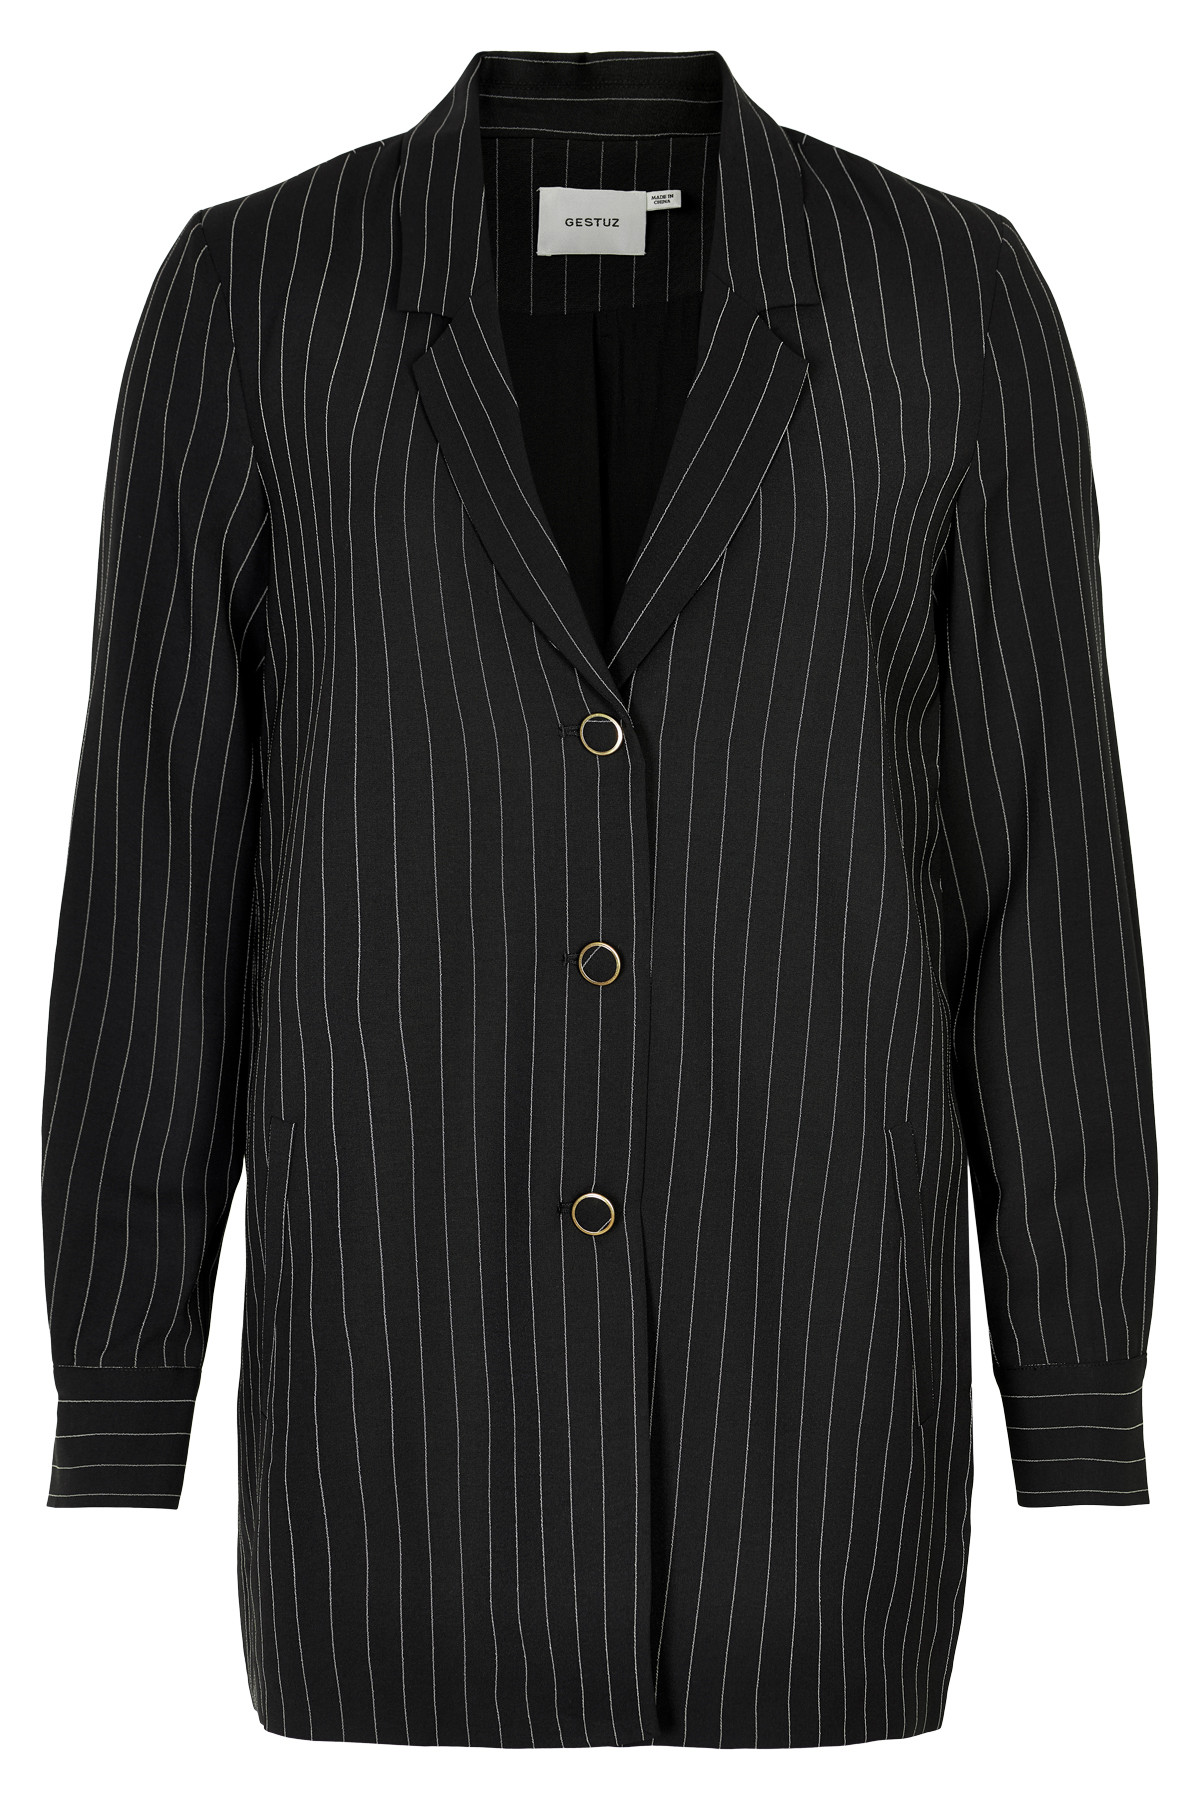 Image of   GESTUZ TARA BLAZER B (Black W. White Stripes 90136, 34)